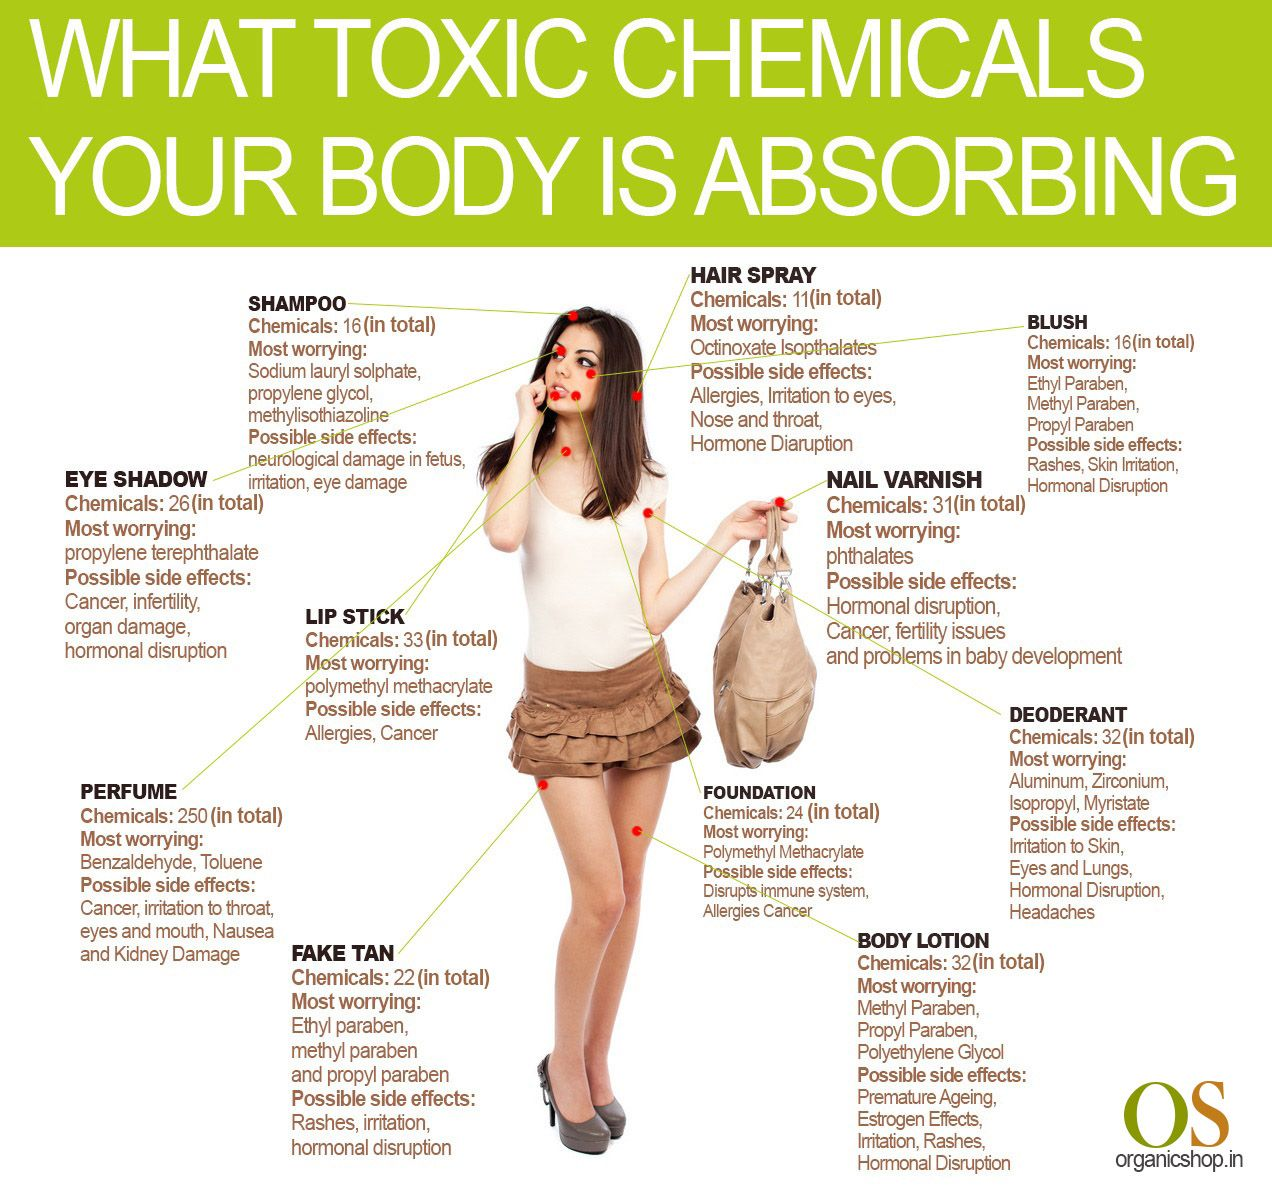 To reduce the side effects of toxic chemicals on your body